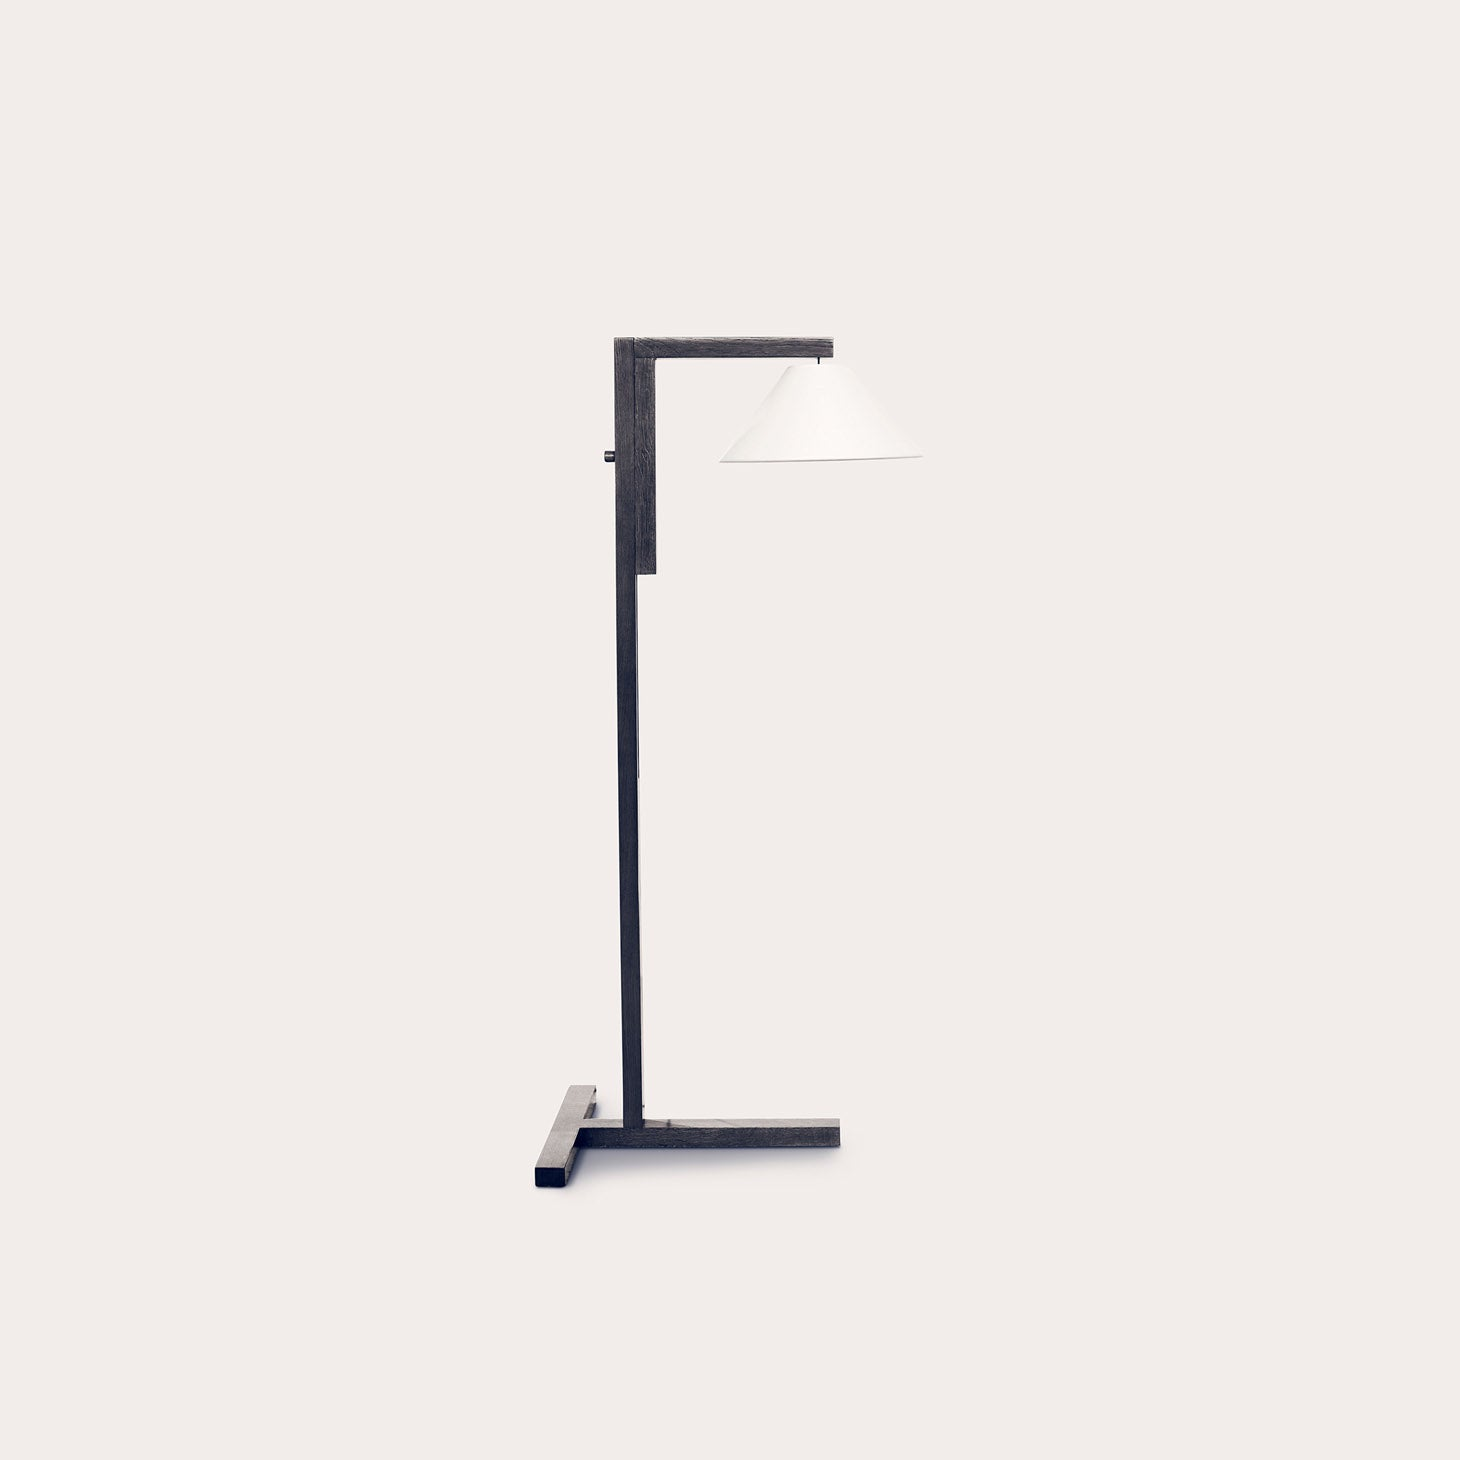 KAY Lighting Christophe Delcourt Designer Furniture Sku: 008-160-10011